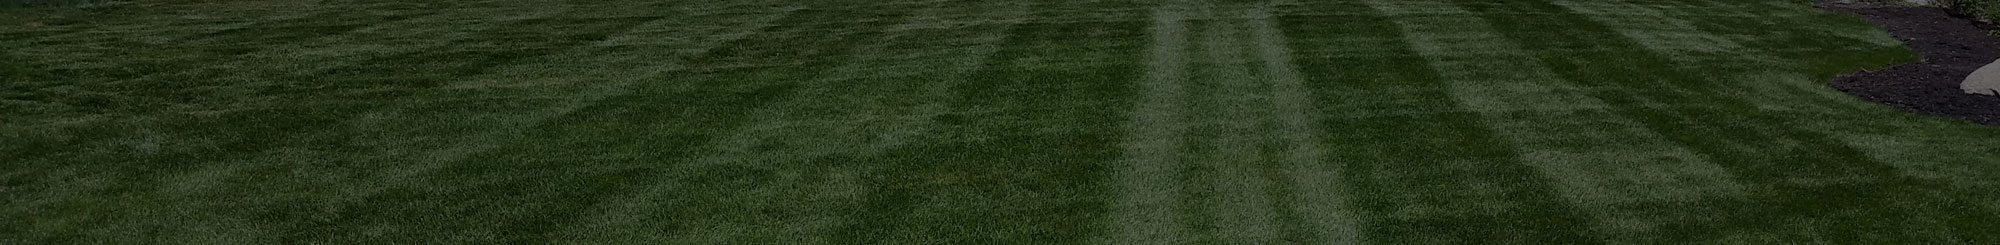 Lawn Mowing Header Marks Landscaping